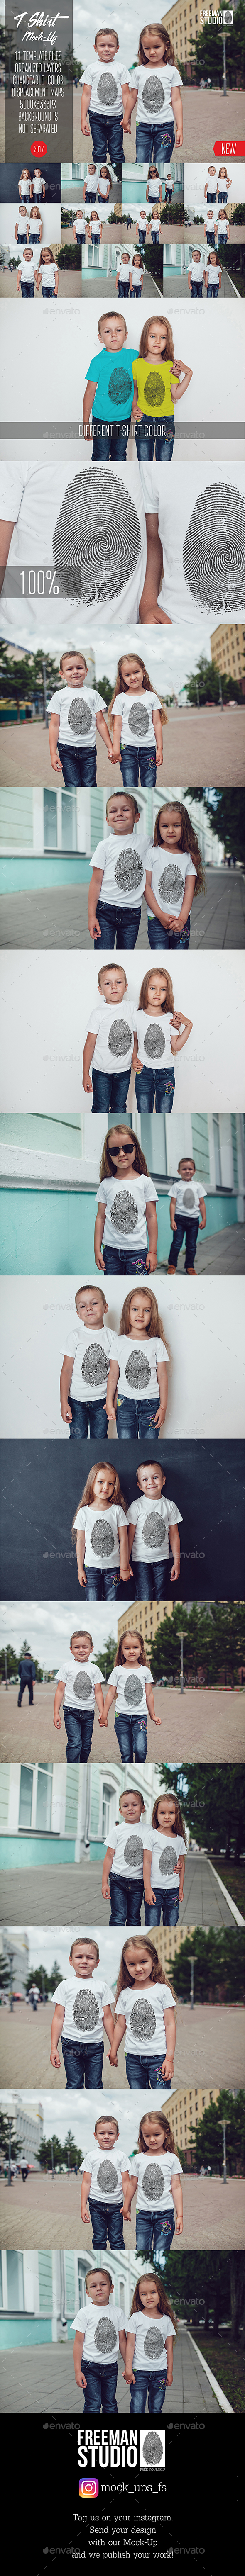 Kids T-Shirt Mock-Up Vol.7 2017 - Product Mock-Ups Graphics